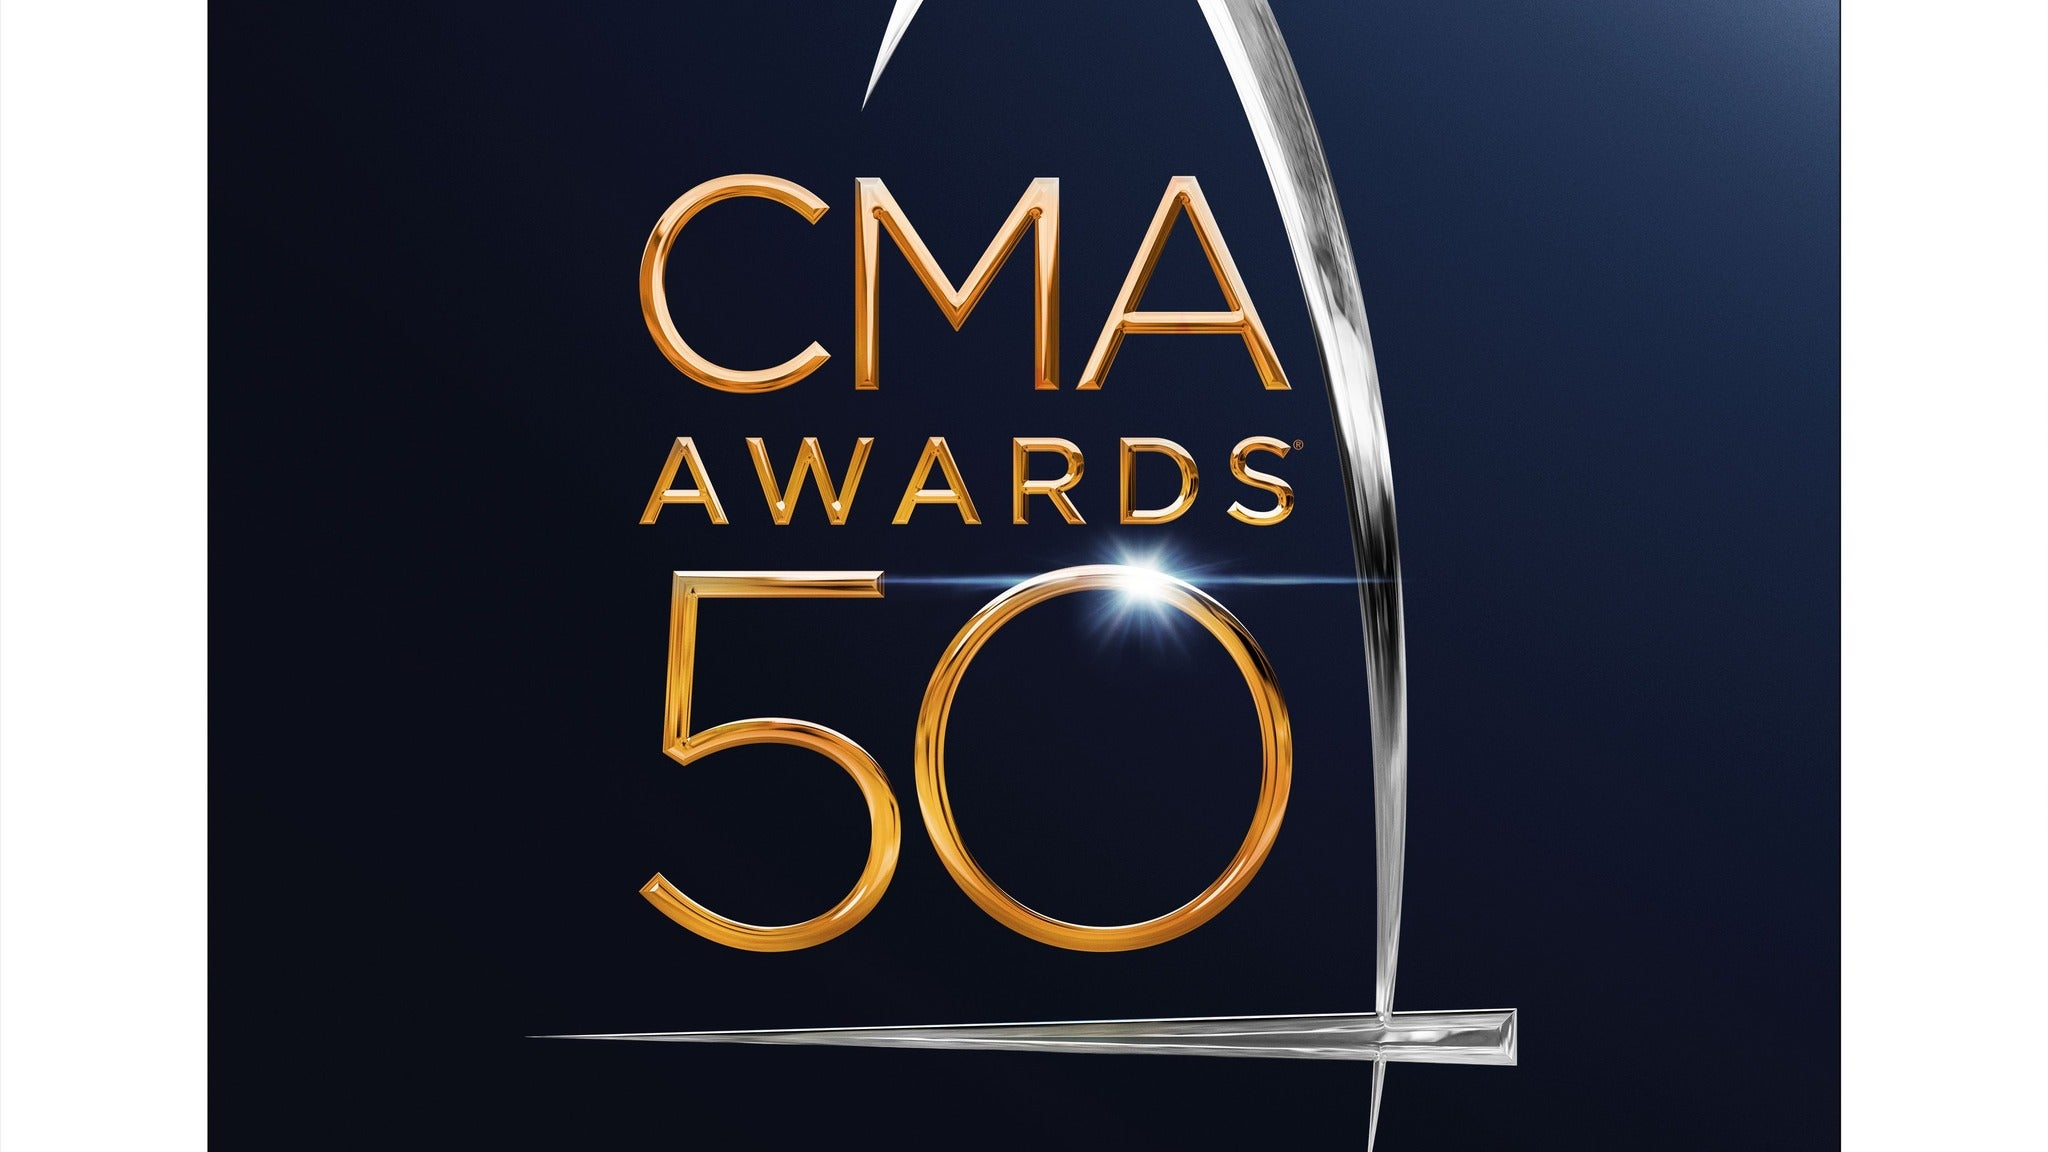 50th Annual CMA Awards at Hard Rock Live